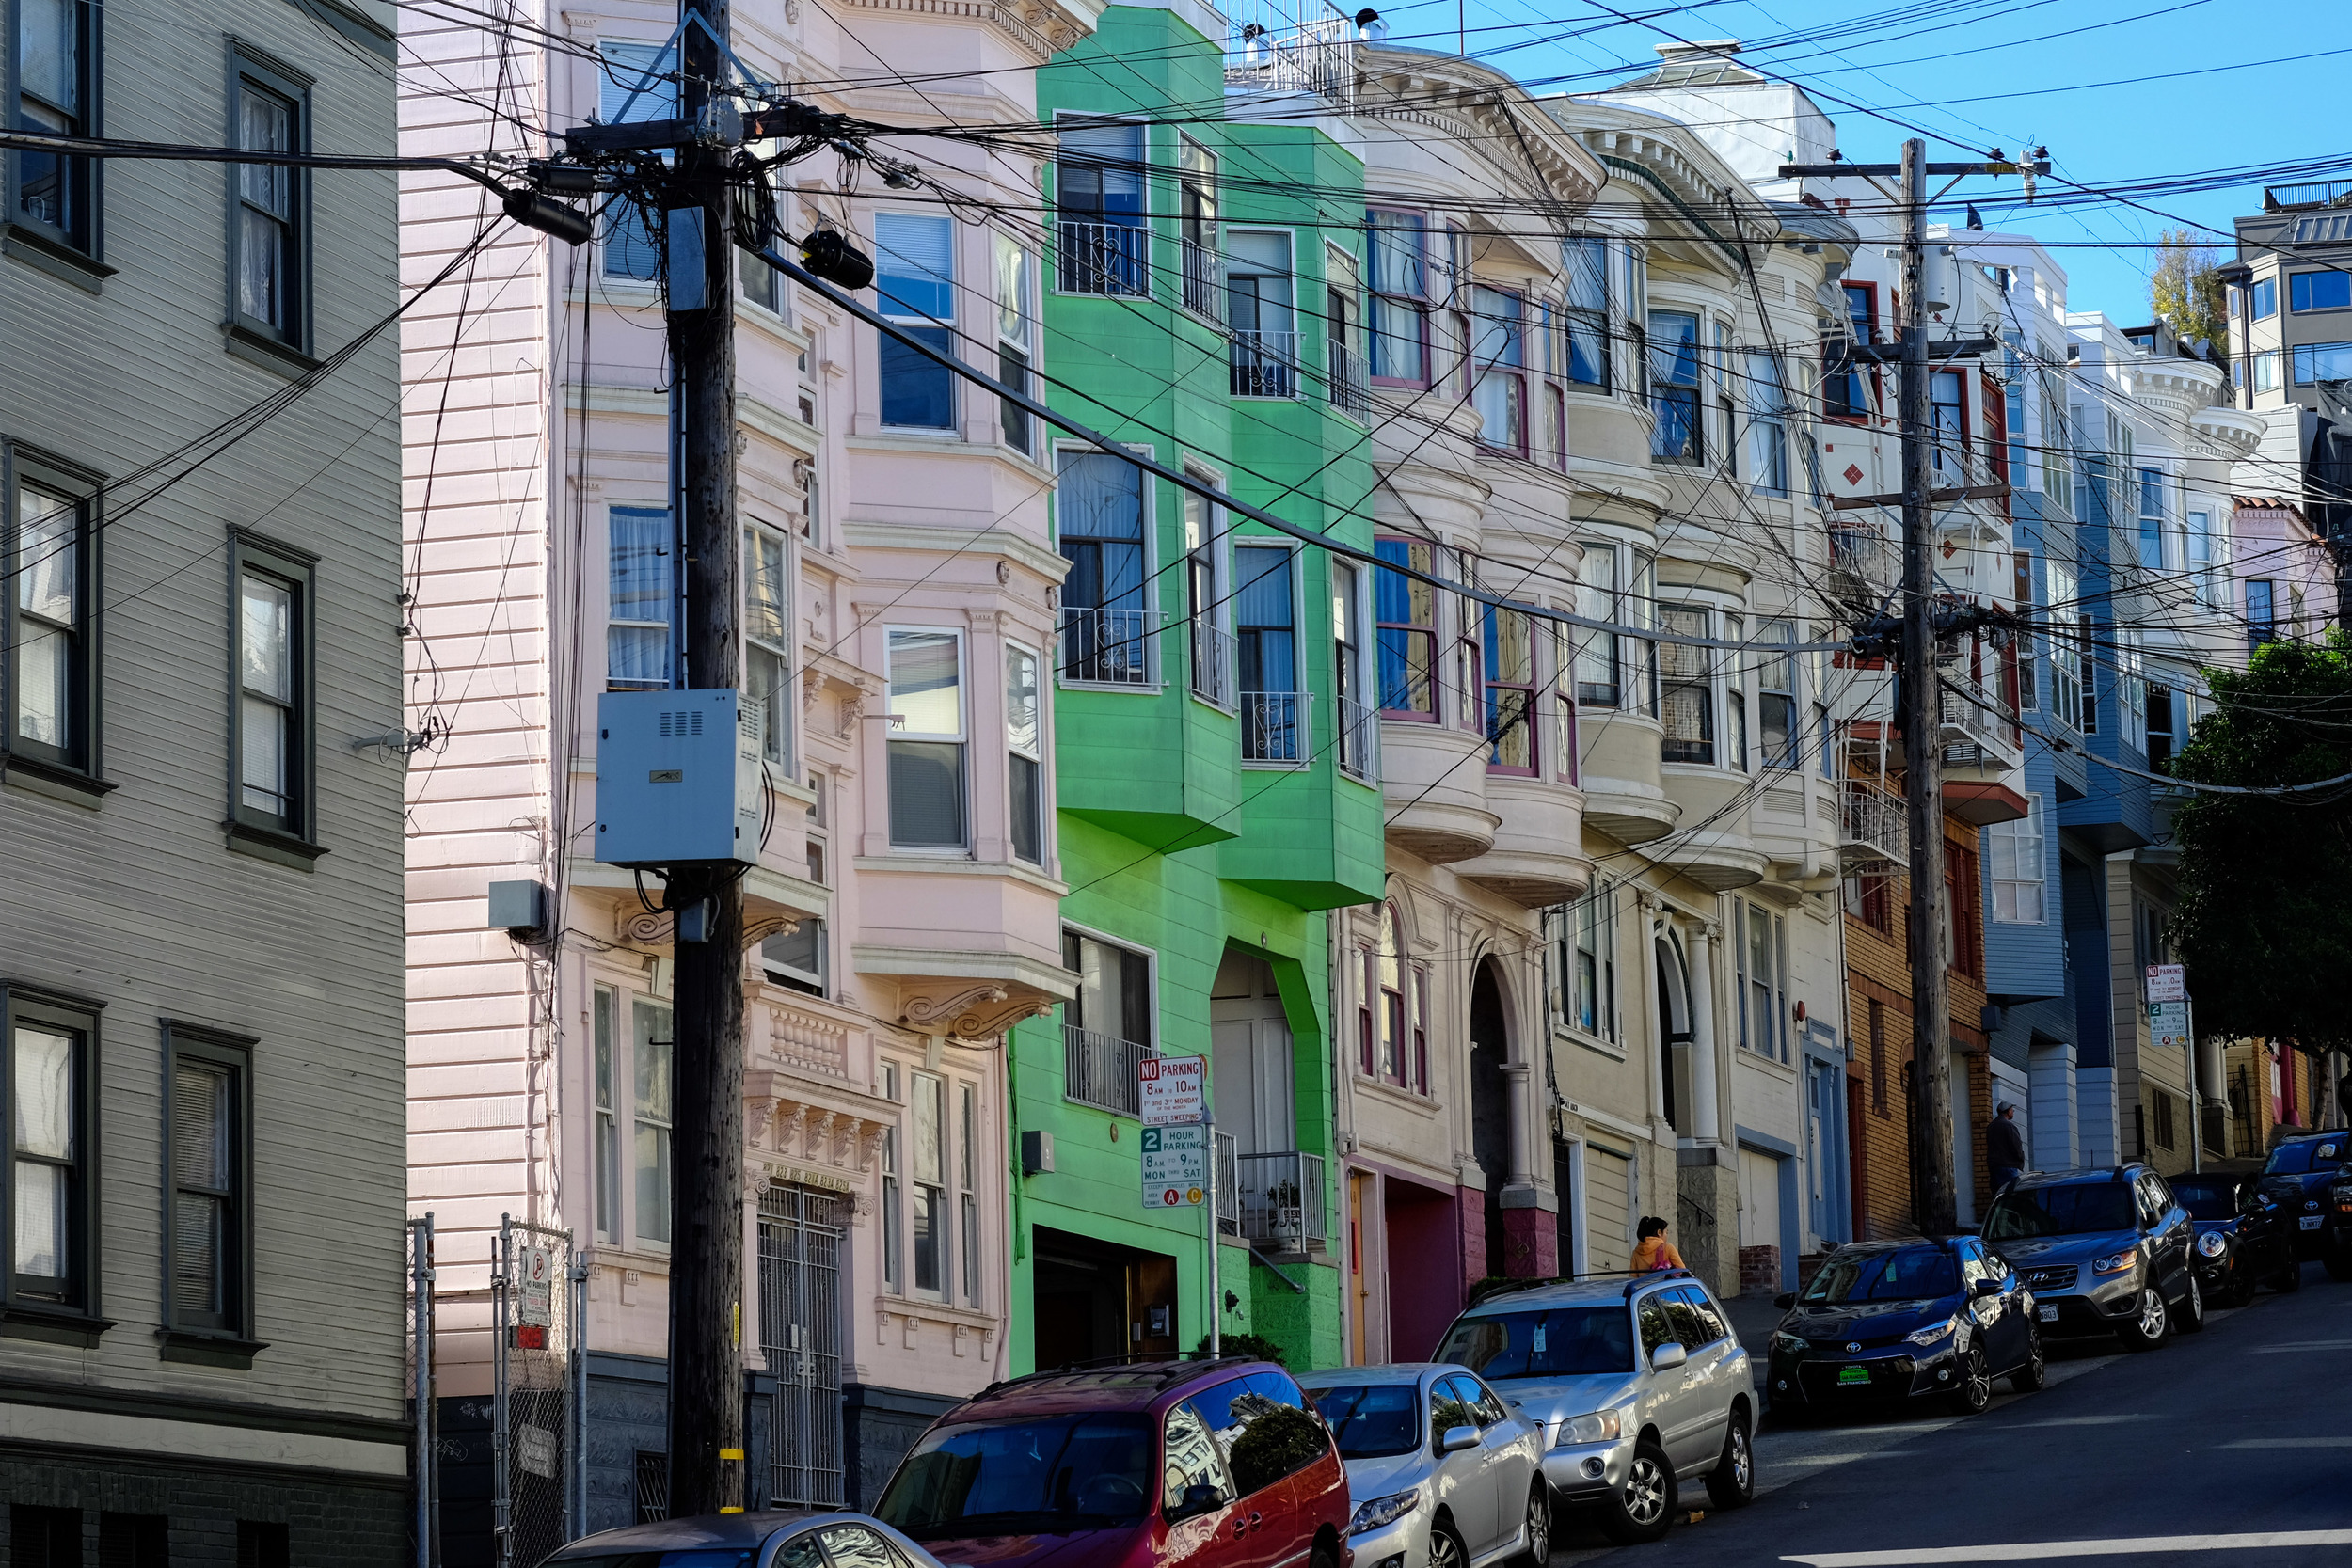 The Green House in San Francisco's North Beach